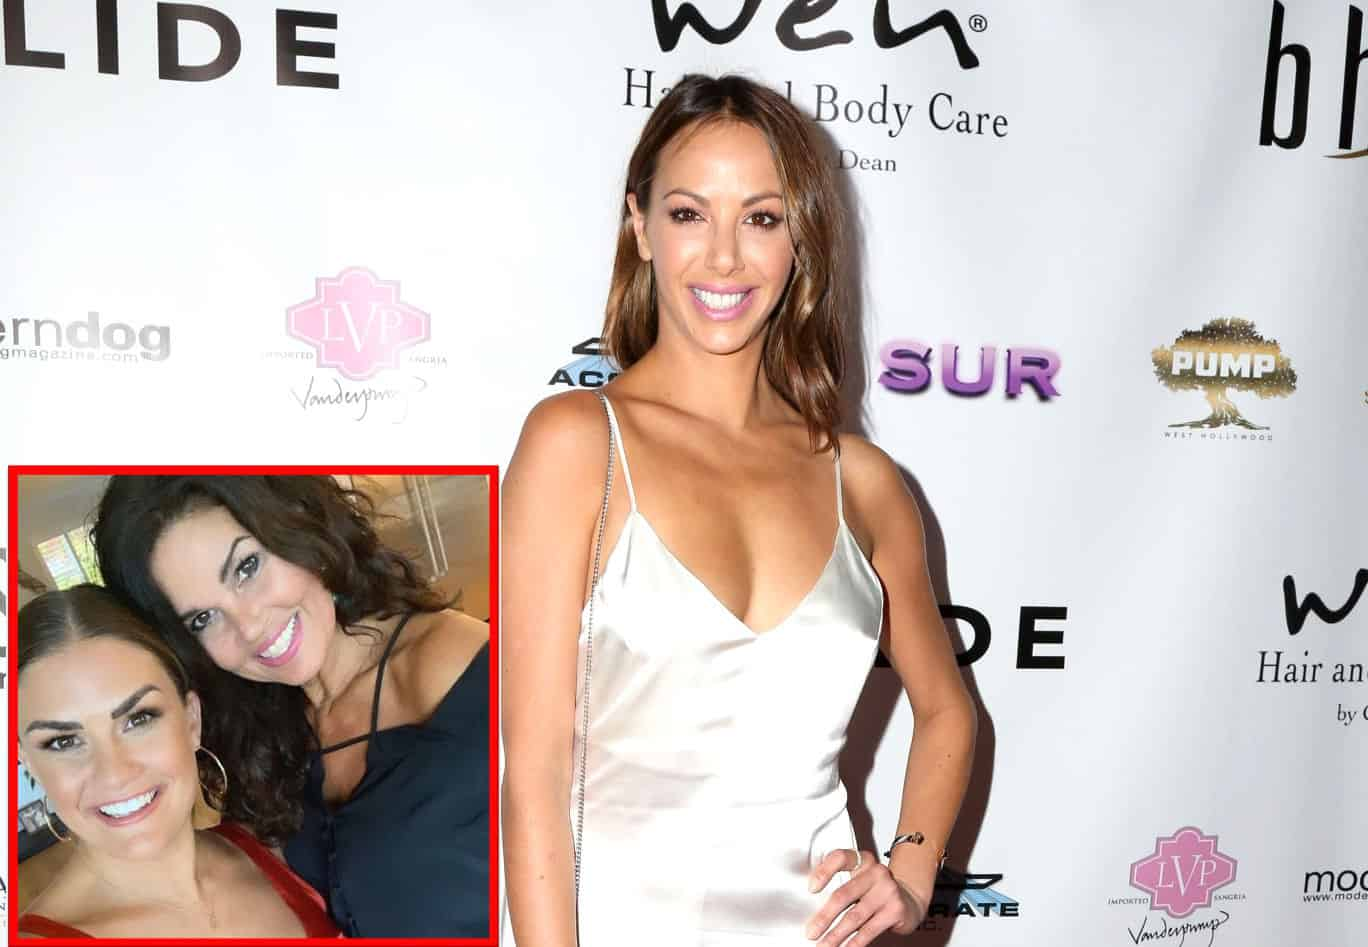 """Kristen Doute Breaks Social Media Silence After Vanderpump Rules Firing to Request """"Prayers"""" for Brittany Cartwright's Mom Sherri Amid Her Stay in the ICU"""